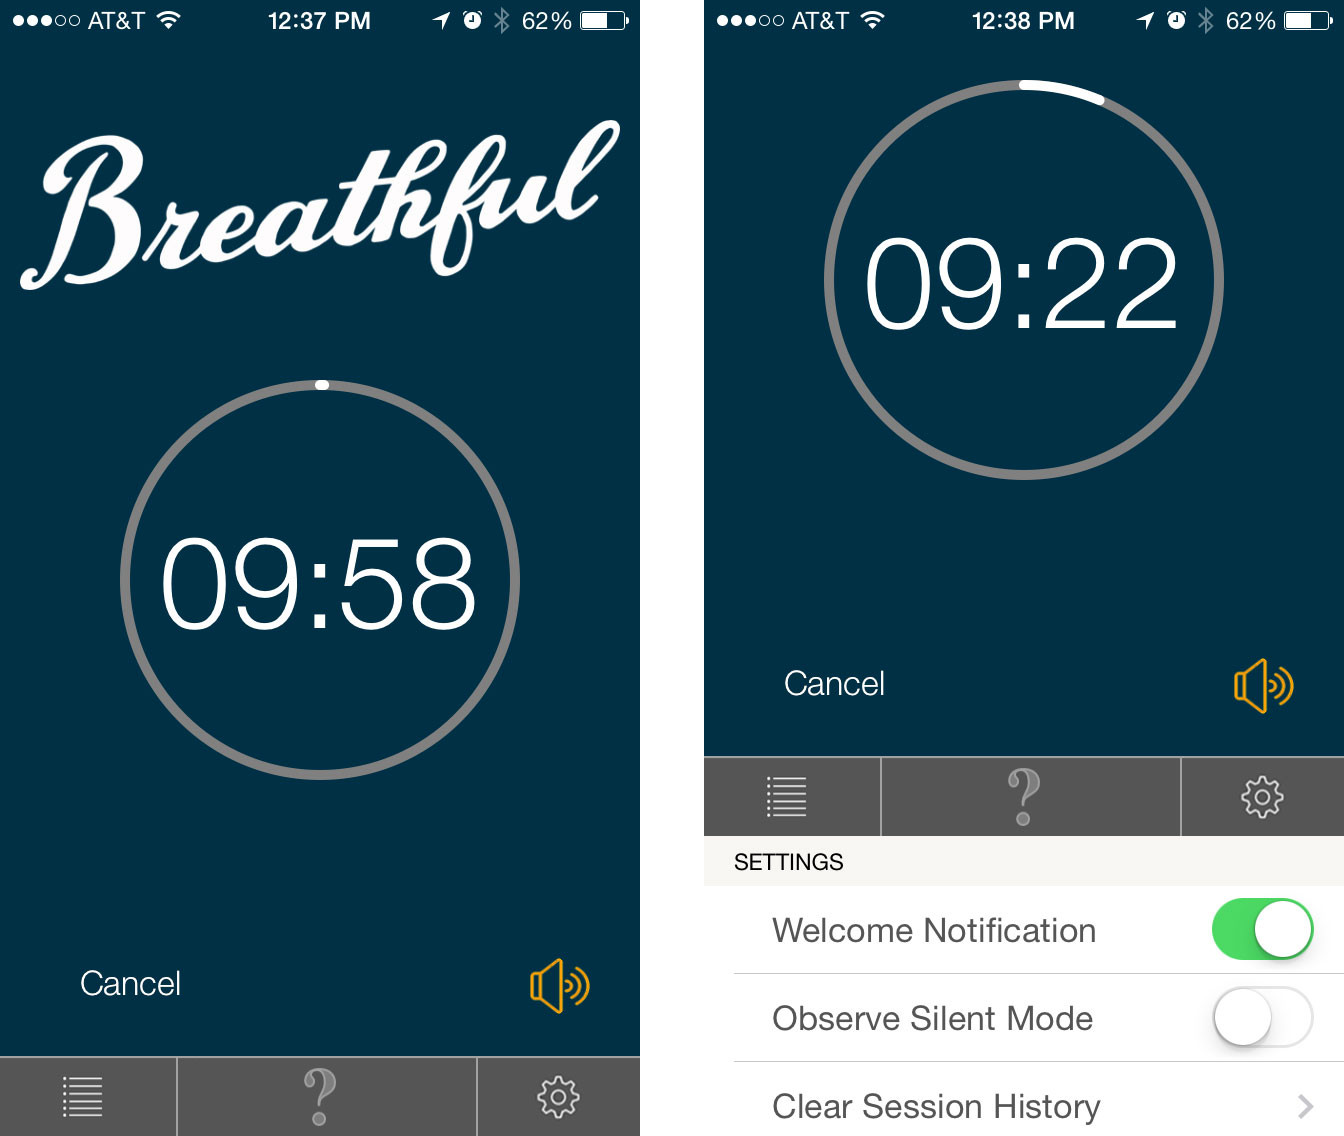 Best meditation apps for iPhone: Breathful